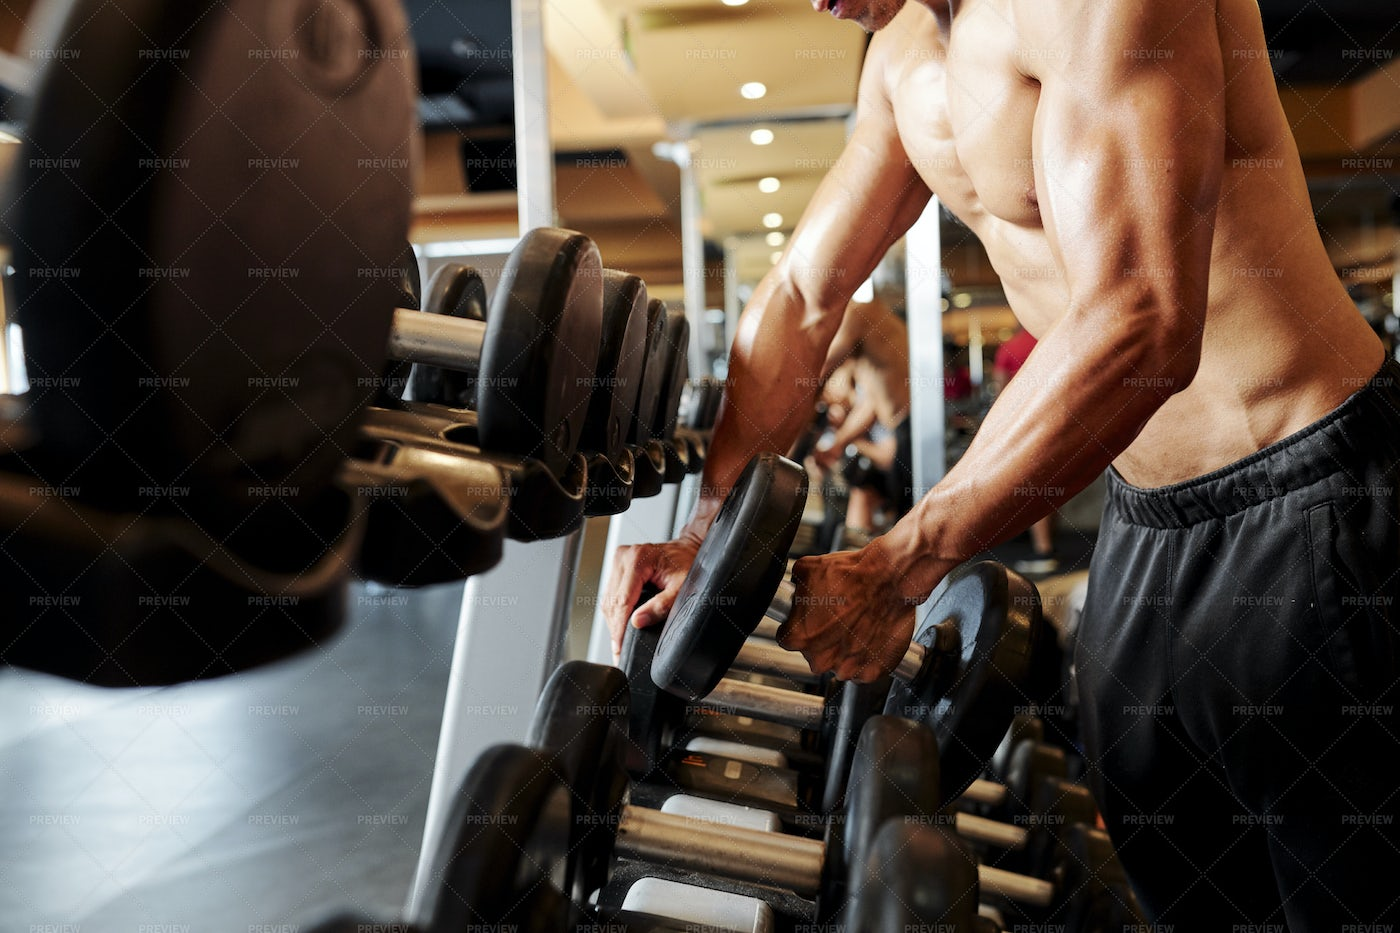 Bodybuilder Training With Dumbbell: Stock Photos